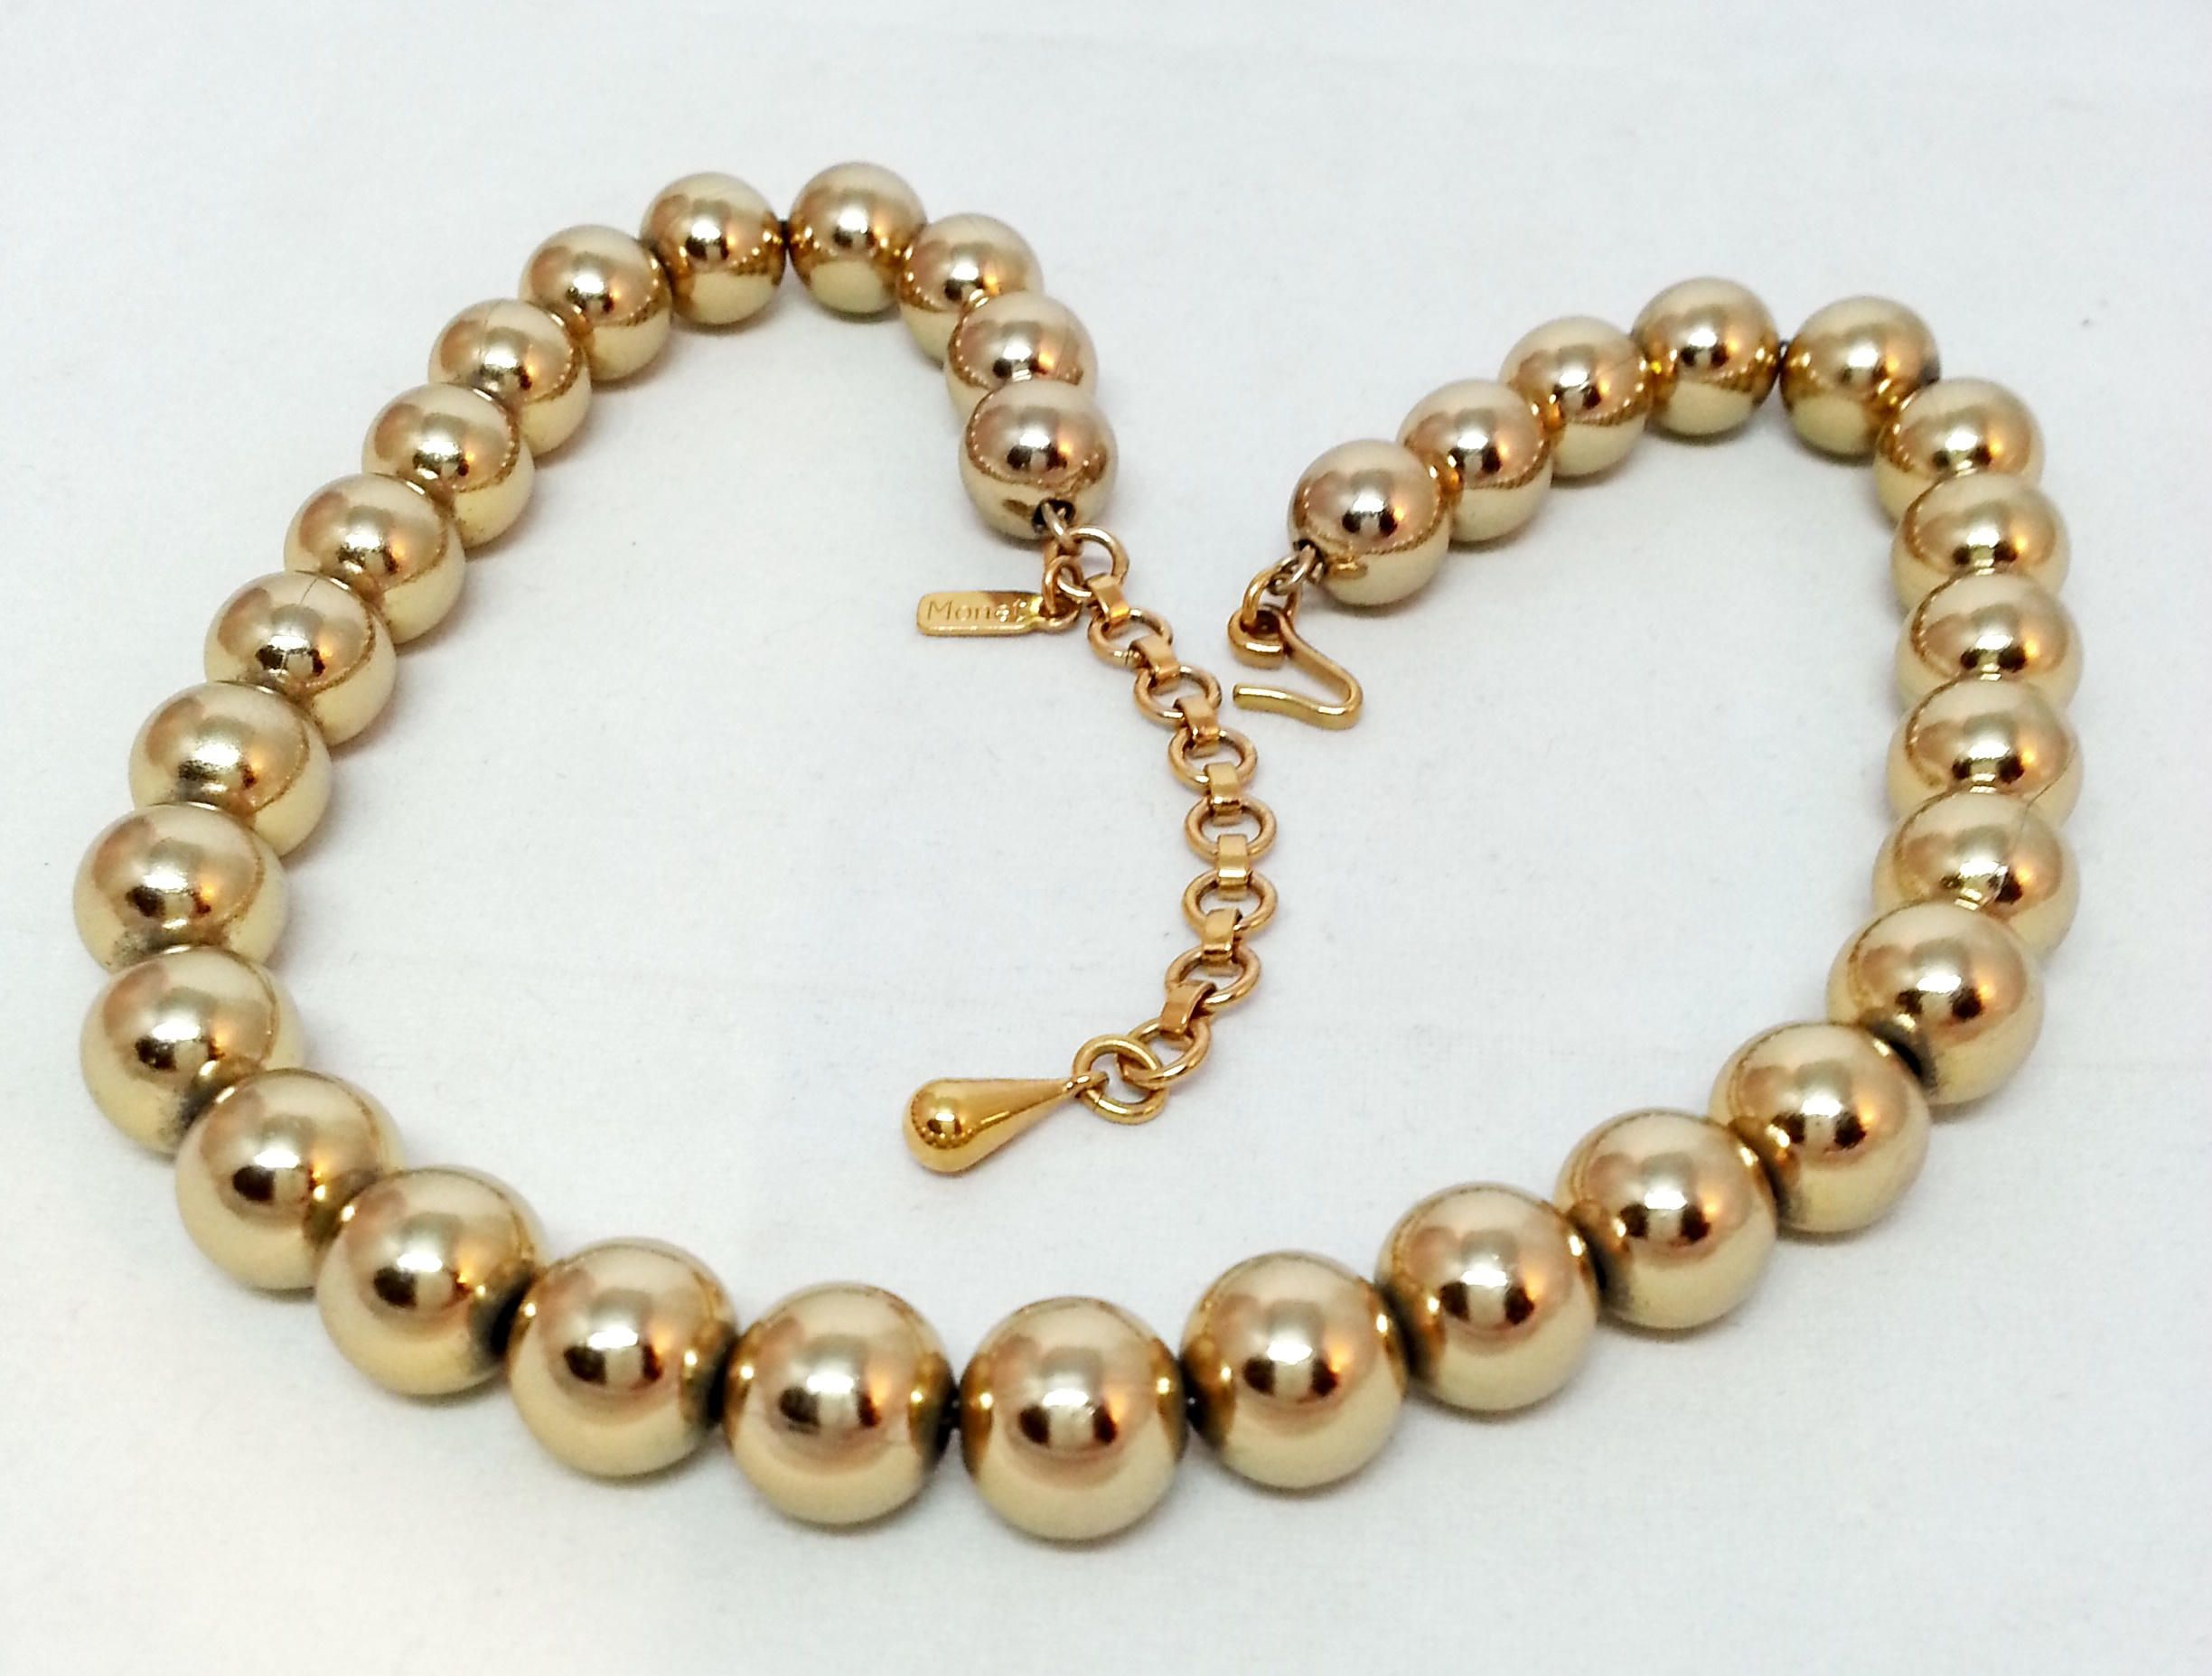 Monet Gold Metallic Beaded Choker Necklace Signed Vintage Designer